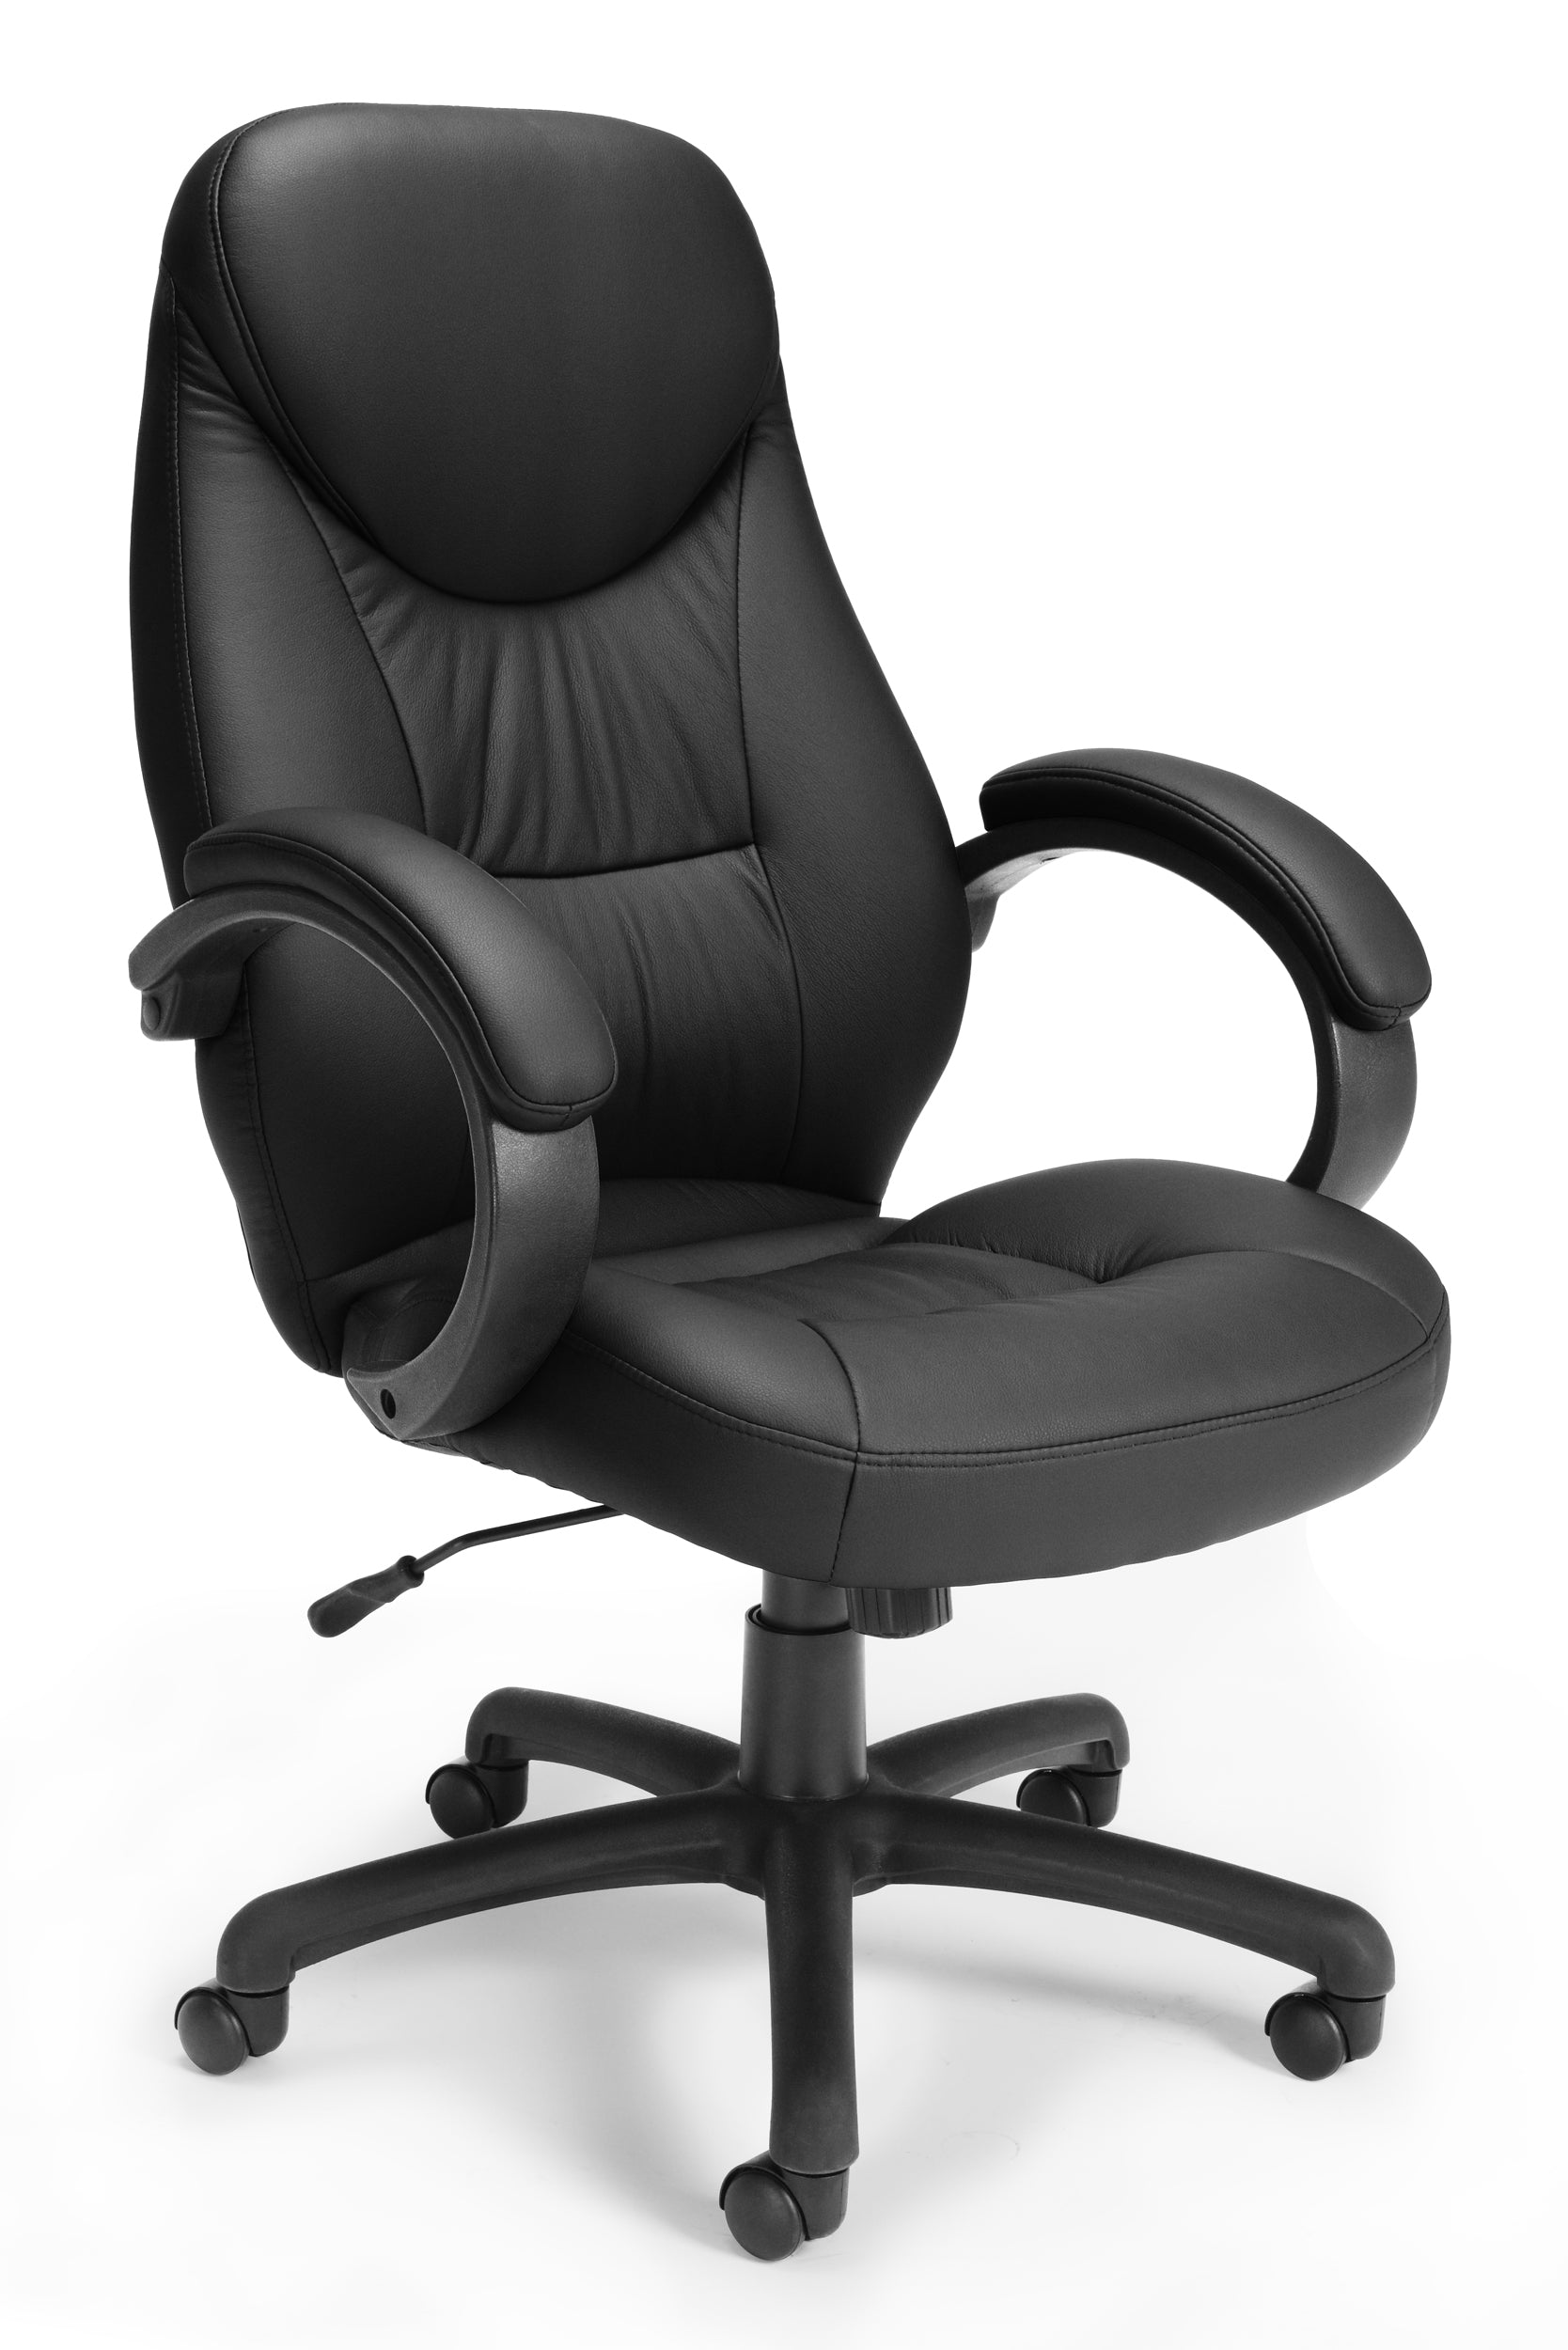 Ofminc Model 522-LX Leatherette Executive High-Back Chair